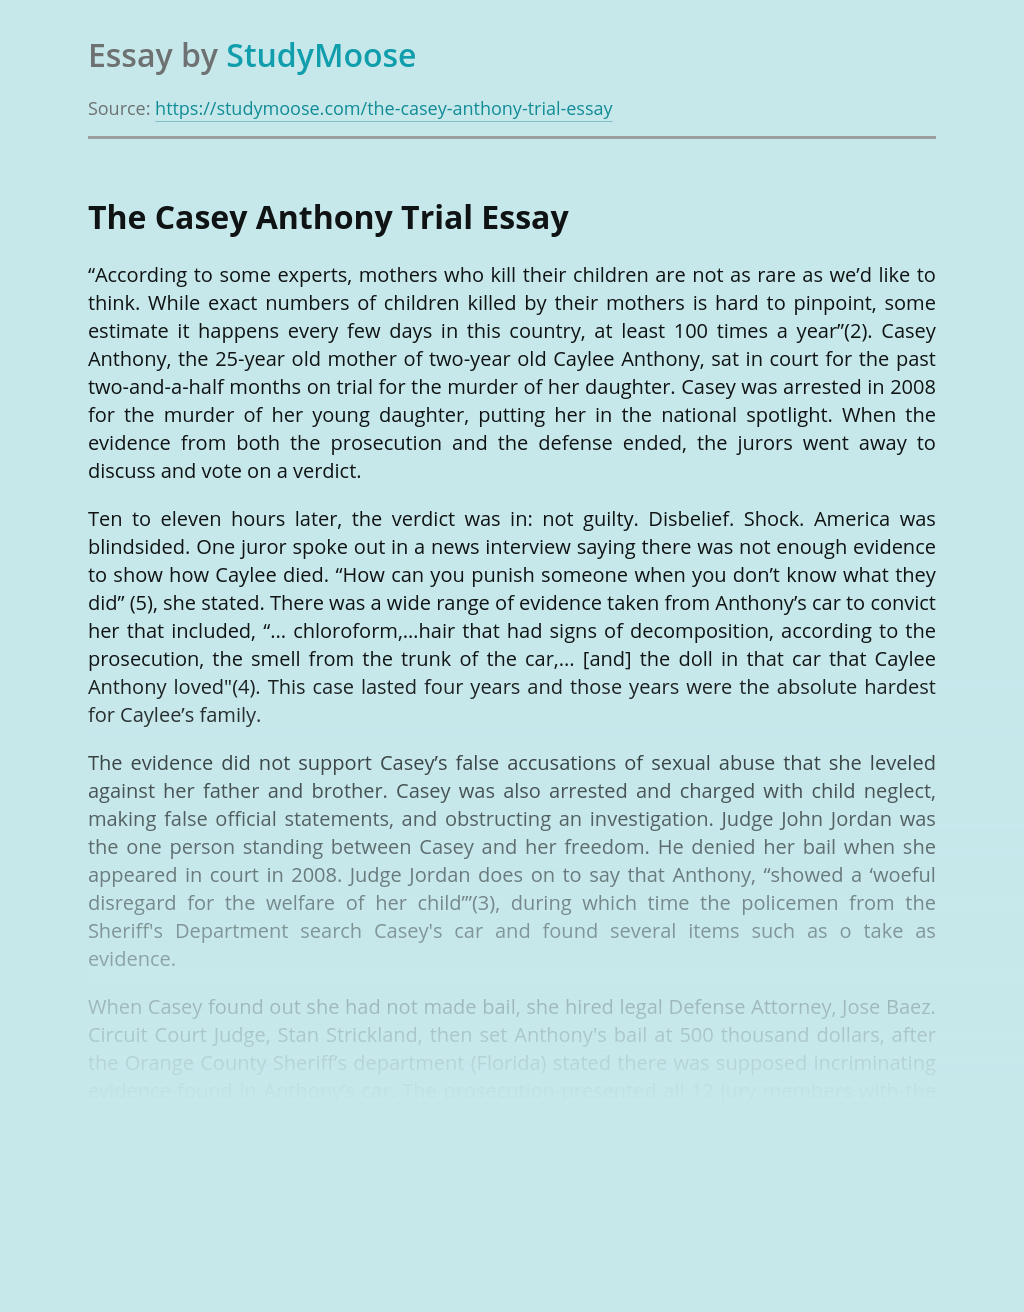 Judiciary in The Casey Anthony Trial Case